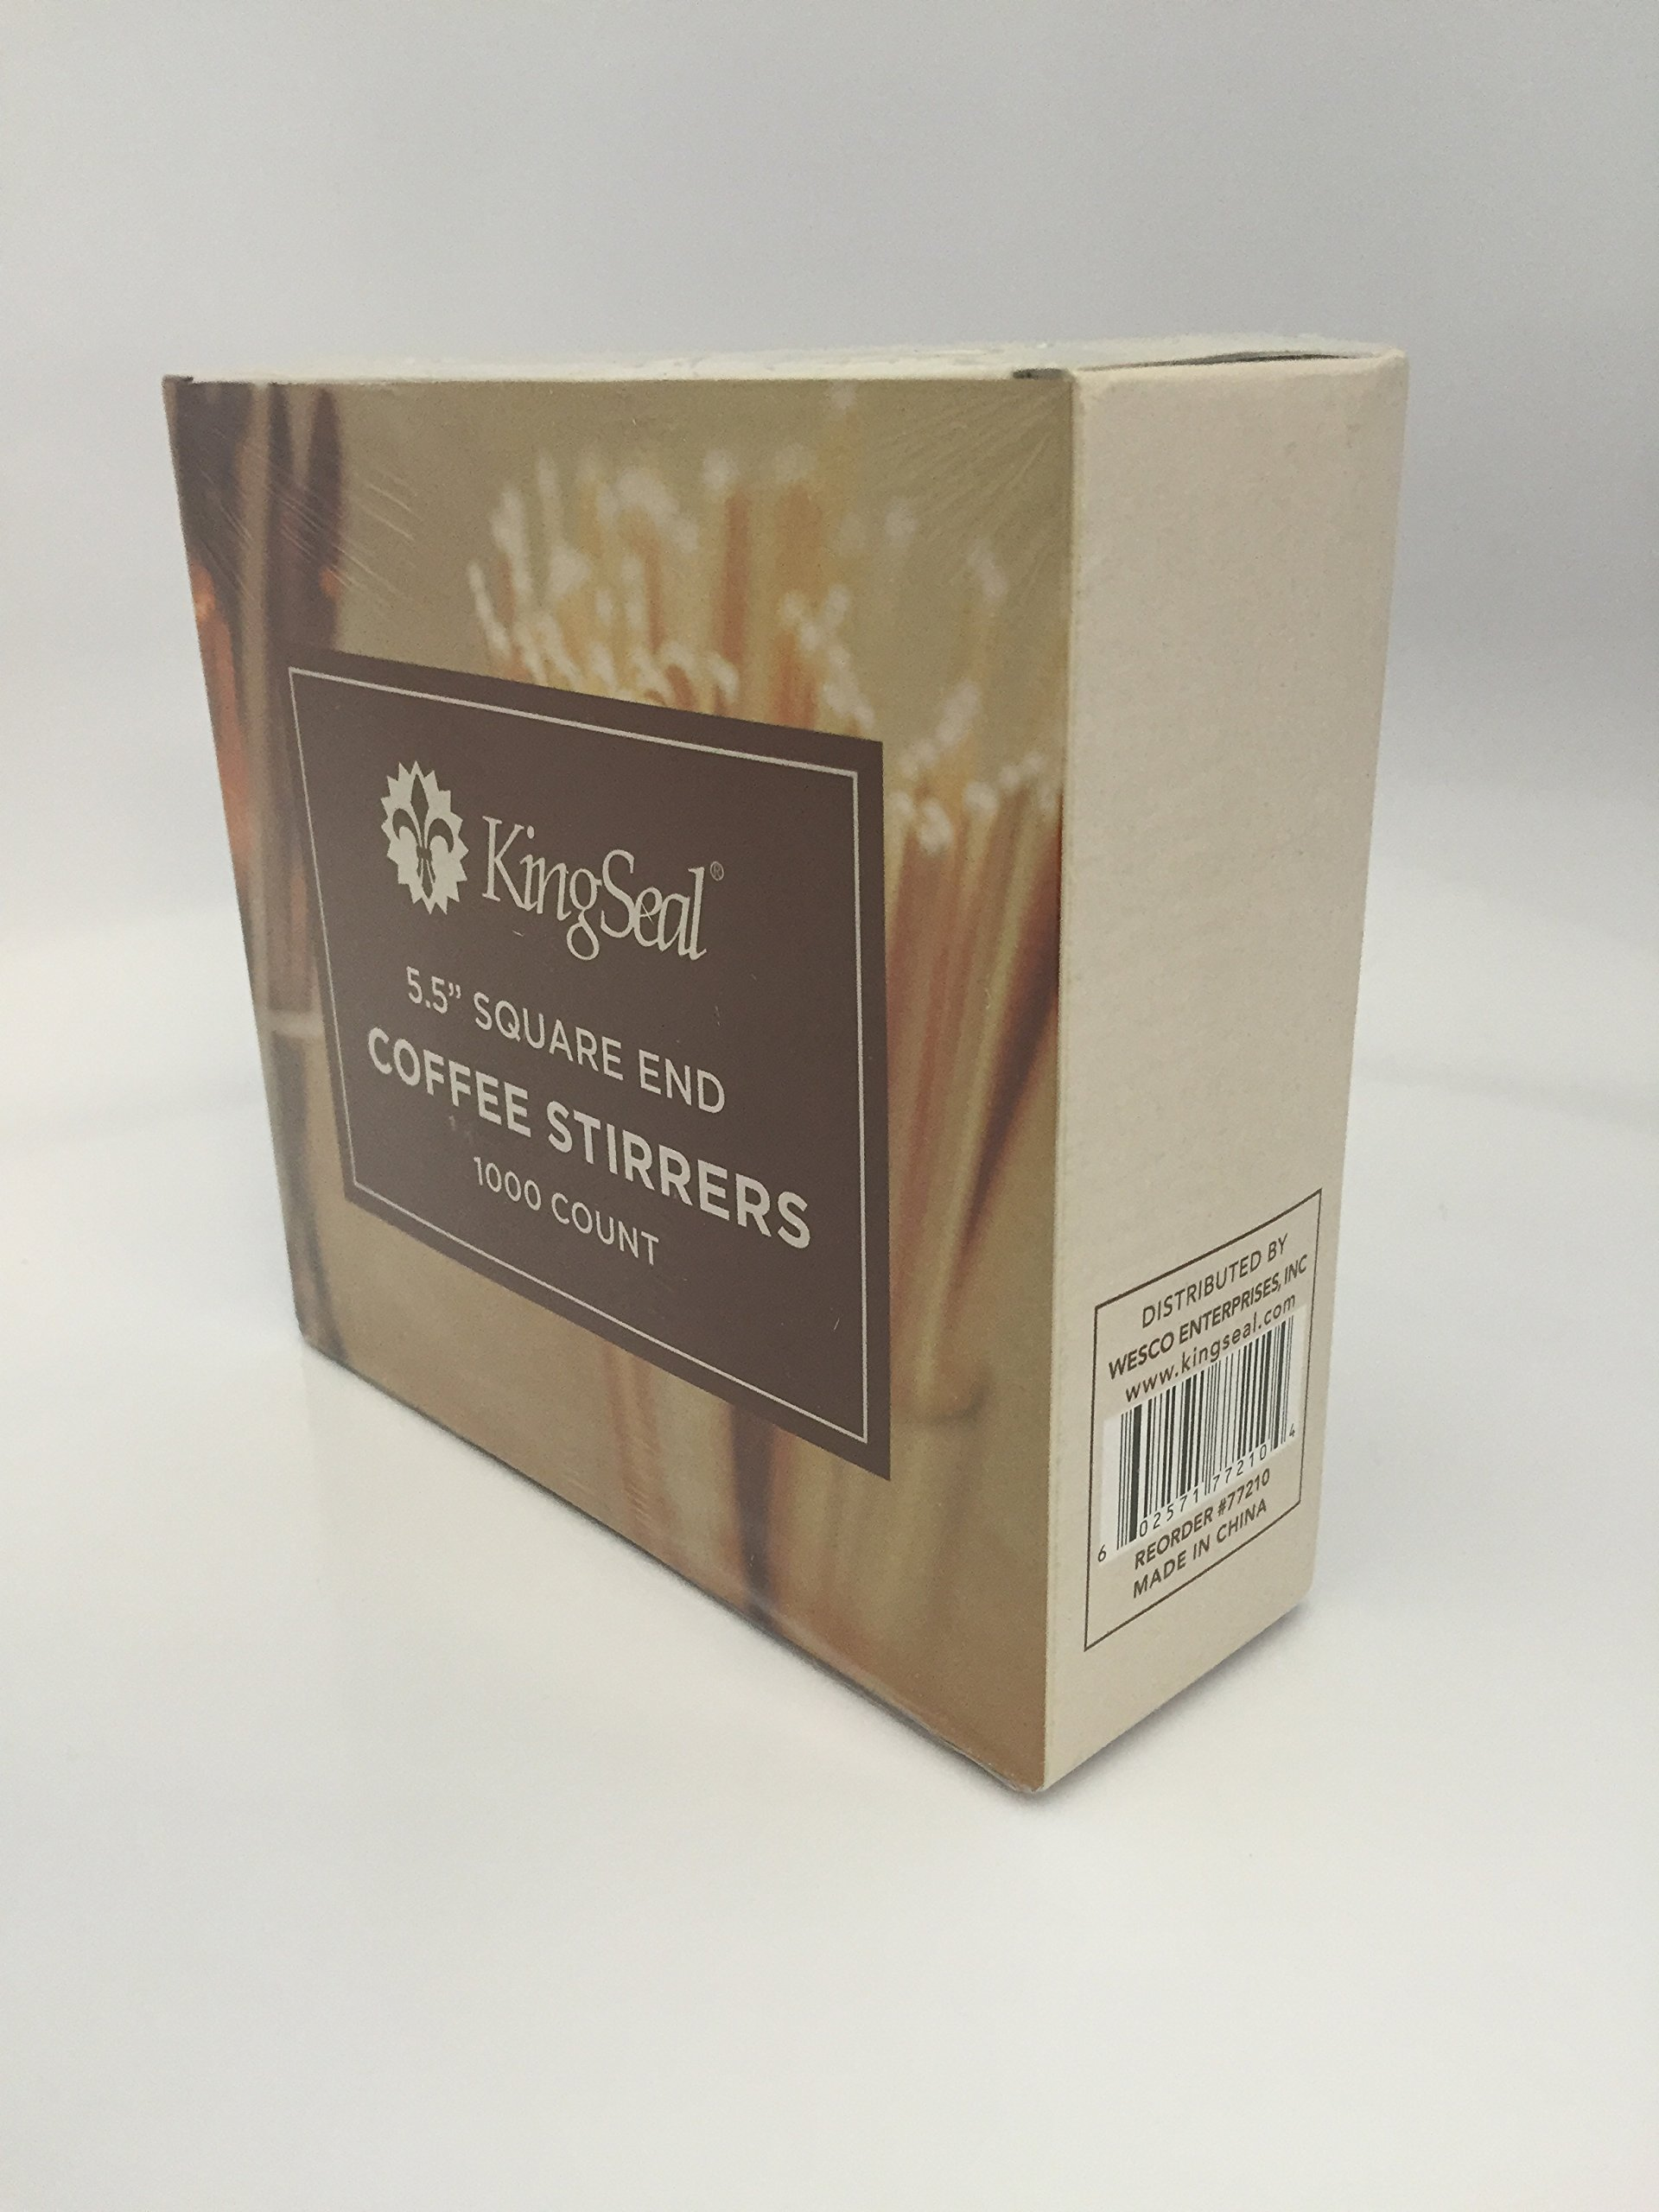 KingSeal Natural Birch Wood Coffee Stirrers, Stir Sticks, 5.5 Inch, Square End - 10 Packs of 1000 per Case (10,000 pcs total) by KingSeal (Image #4)